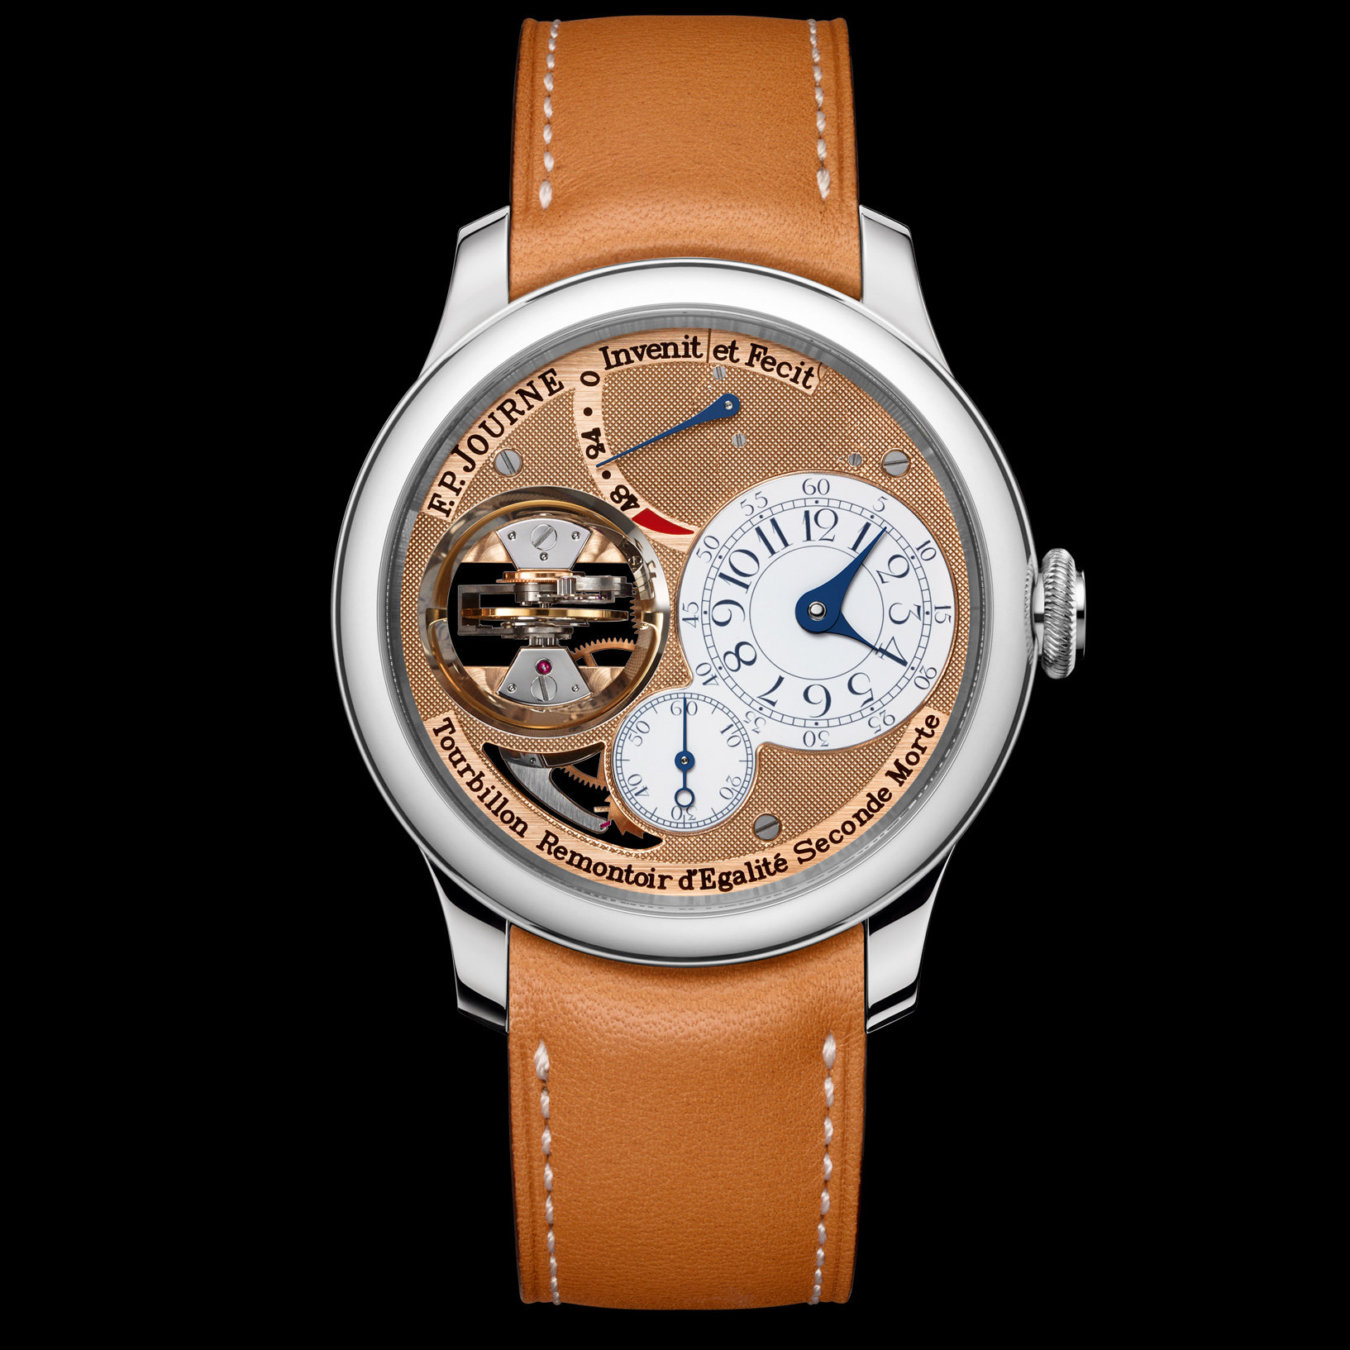 f.p.journe tourbillon vertical souverain platinum price